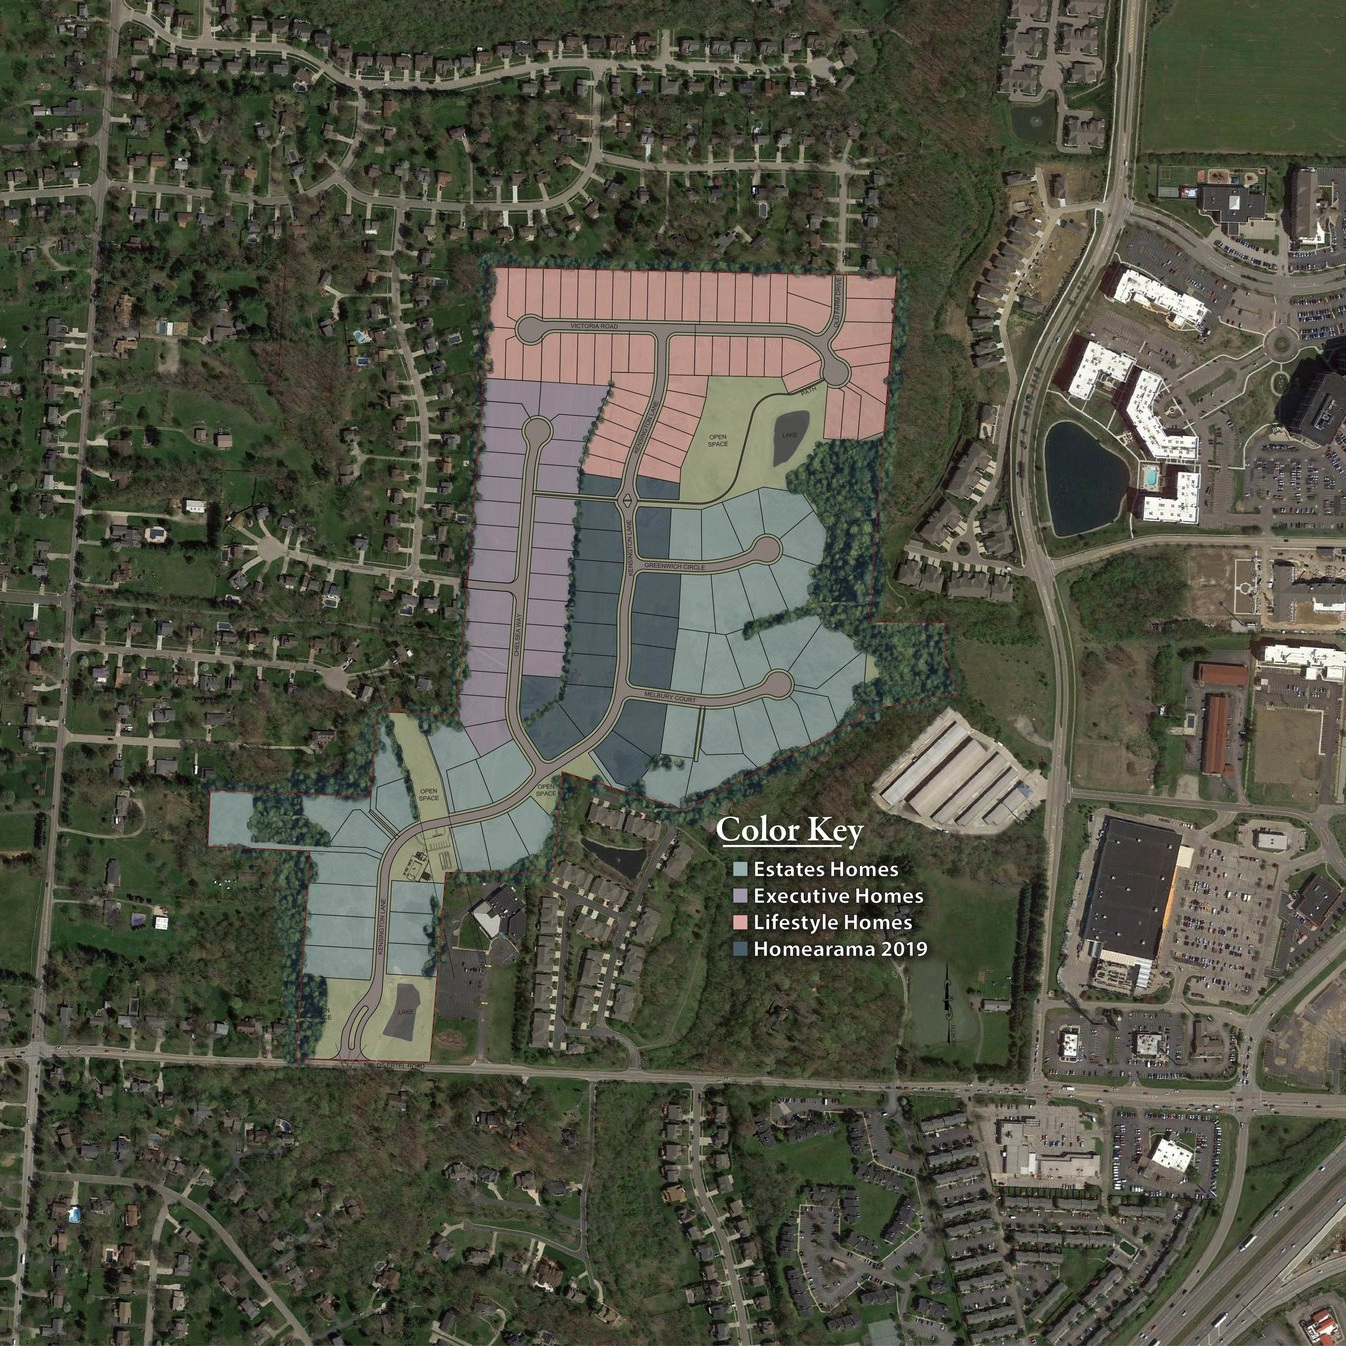 PRIME HOME SITES - You won't find better home site options than in Kensington! Choose from lot sizes ranging from .4 to over one acre, wooded or open, private or in the heart of of it all, level or rolling, see which site is perfect for your new home.